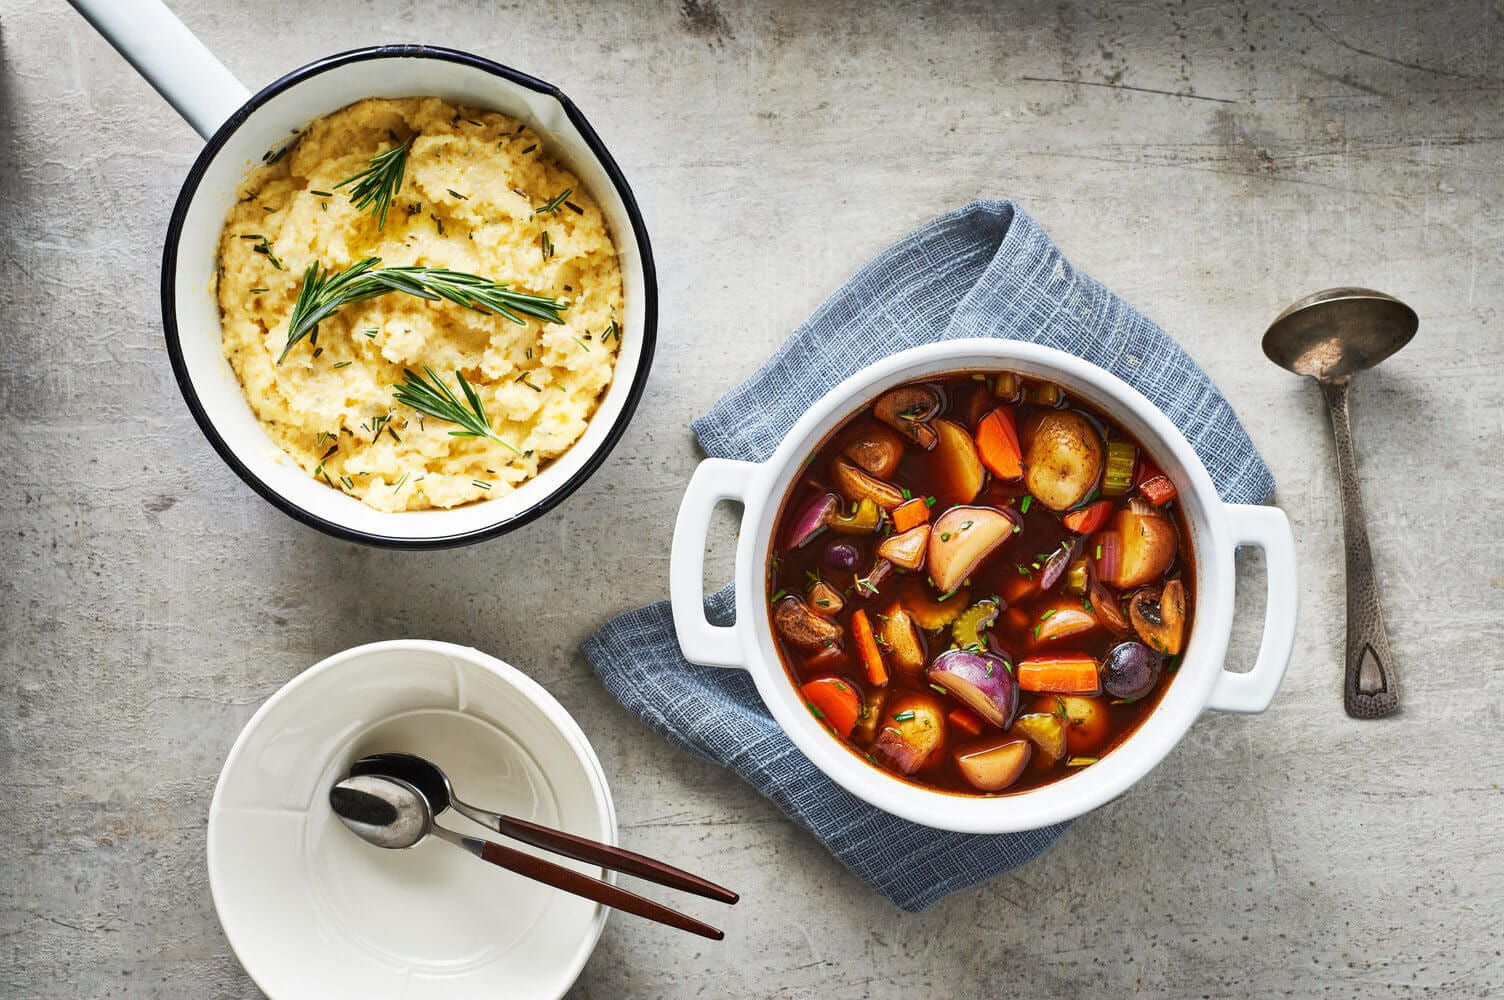 Slow Cooker Vegetable Stew with Polenta